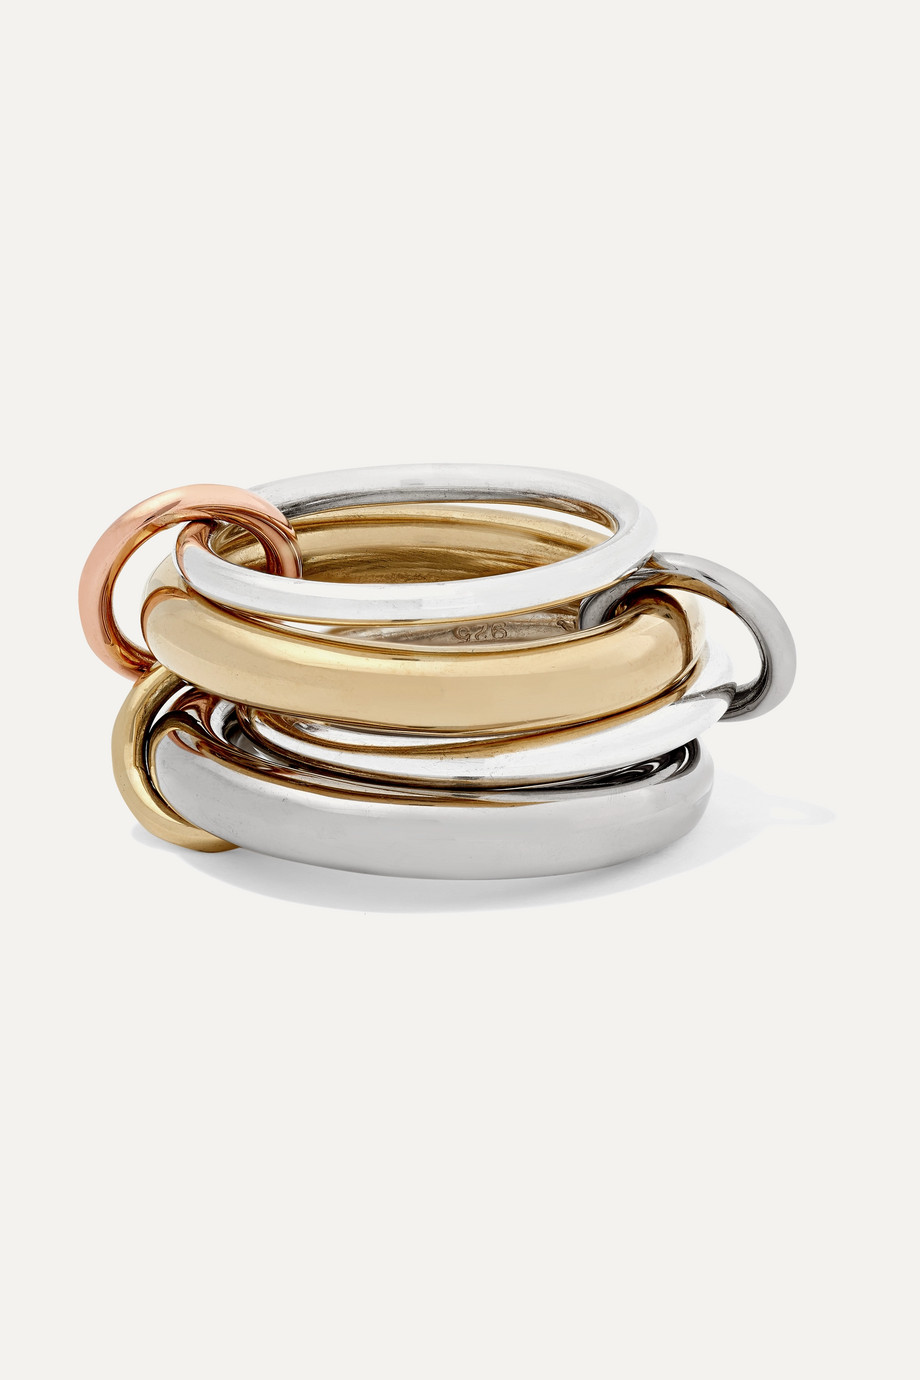 Spinelli Kilcollin Cici Noir set of four 18-karat yellow, black and rose gold and sterling silver rings